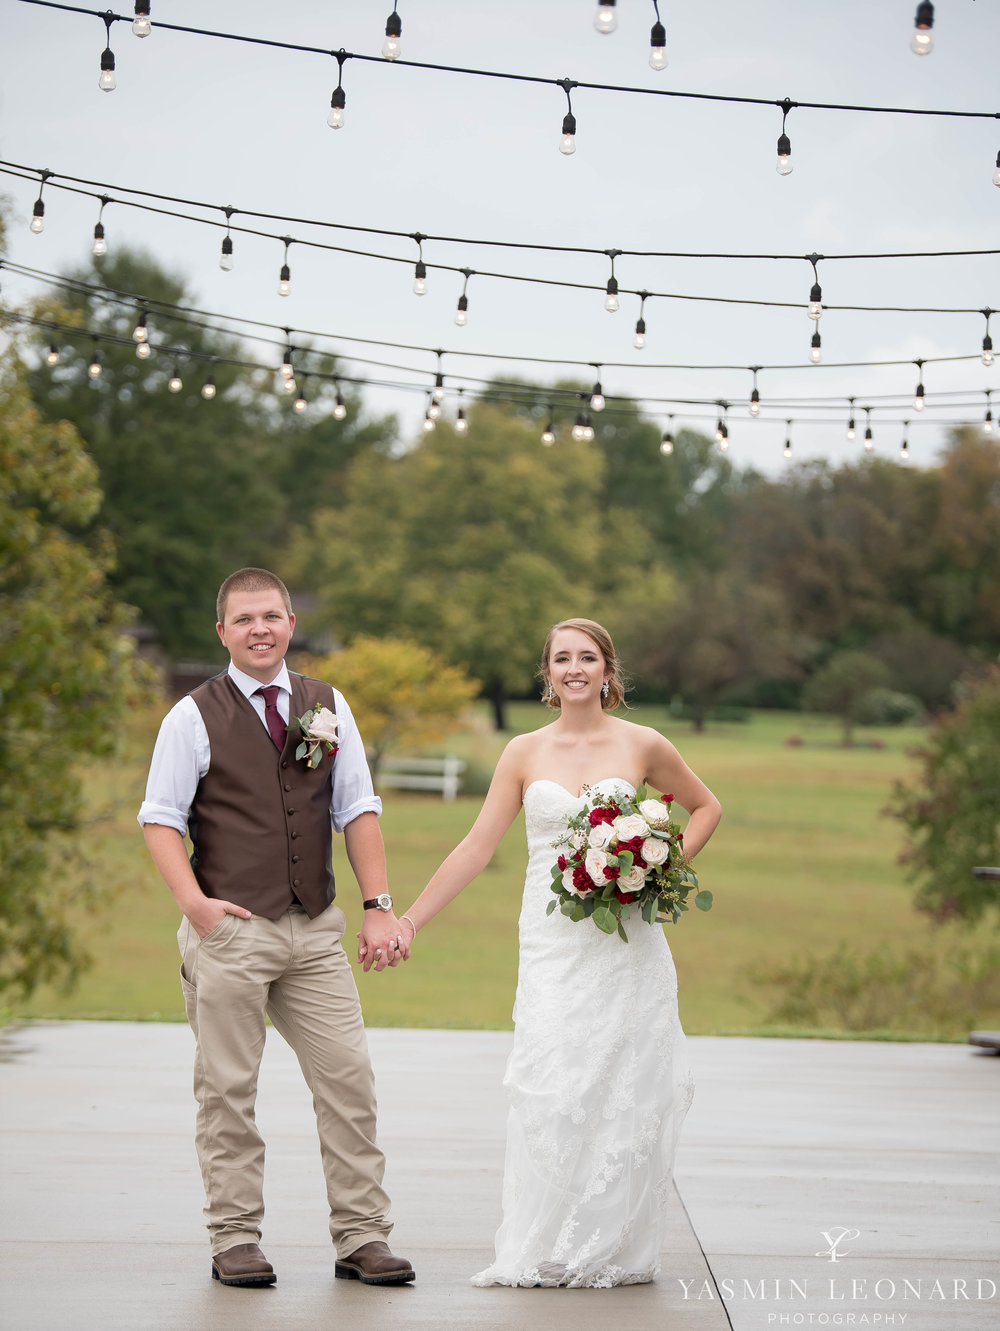 Millikan Farms - NC Wedding Venue - NC Wedding Photographer - Yasmin Leonard Photography - Rain on your wedding day-55.jpg